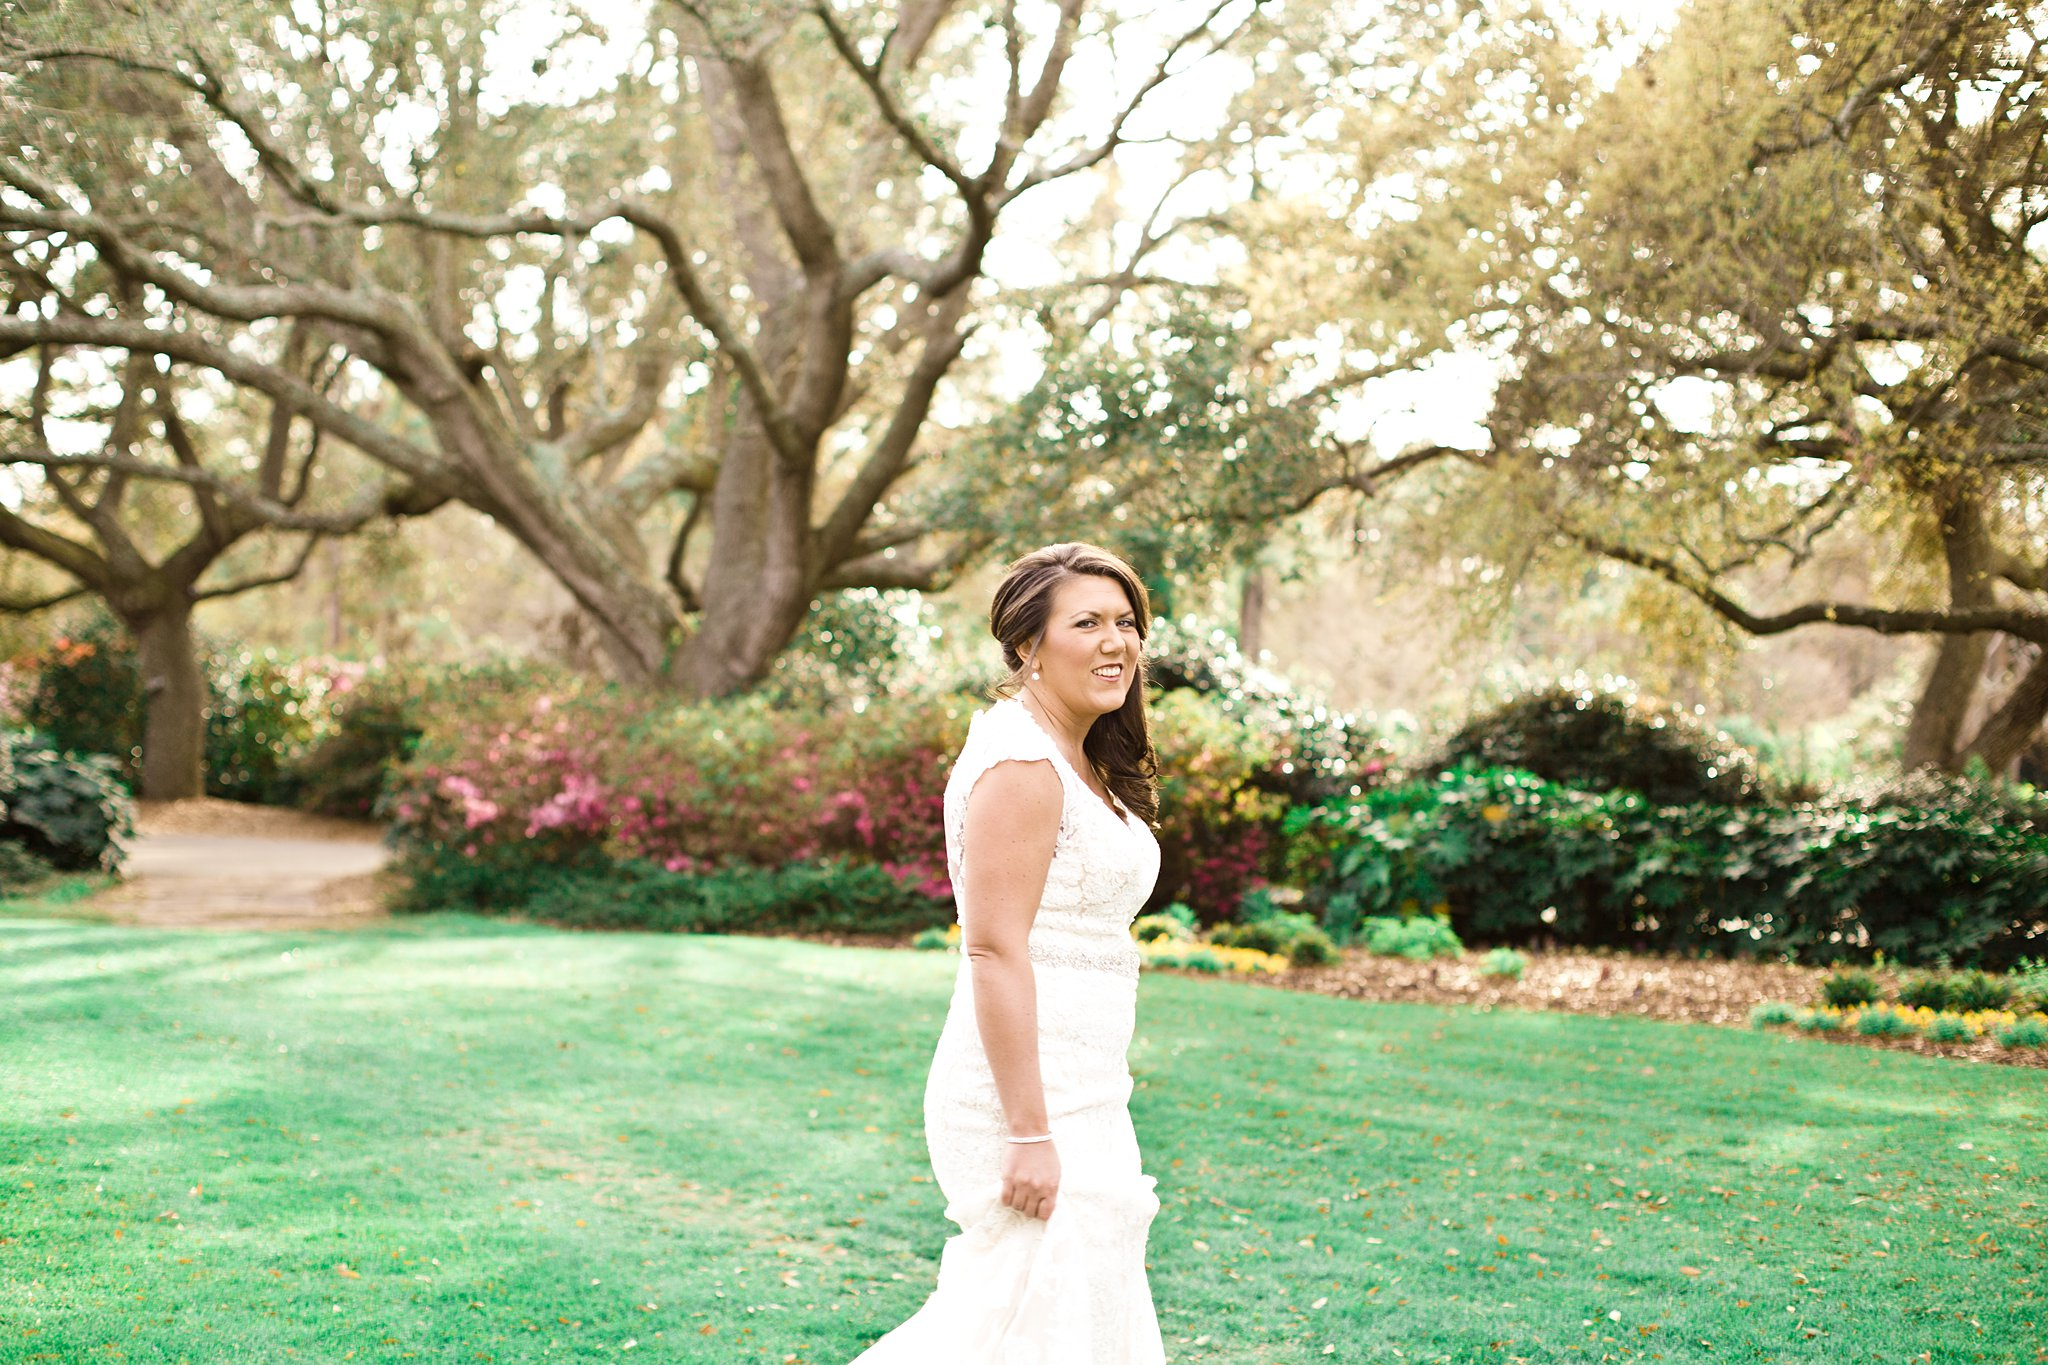 litchfield-golf-country-club-bridal-session-pawleys-island-sc-photos_0116.jpg